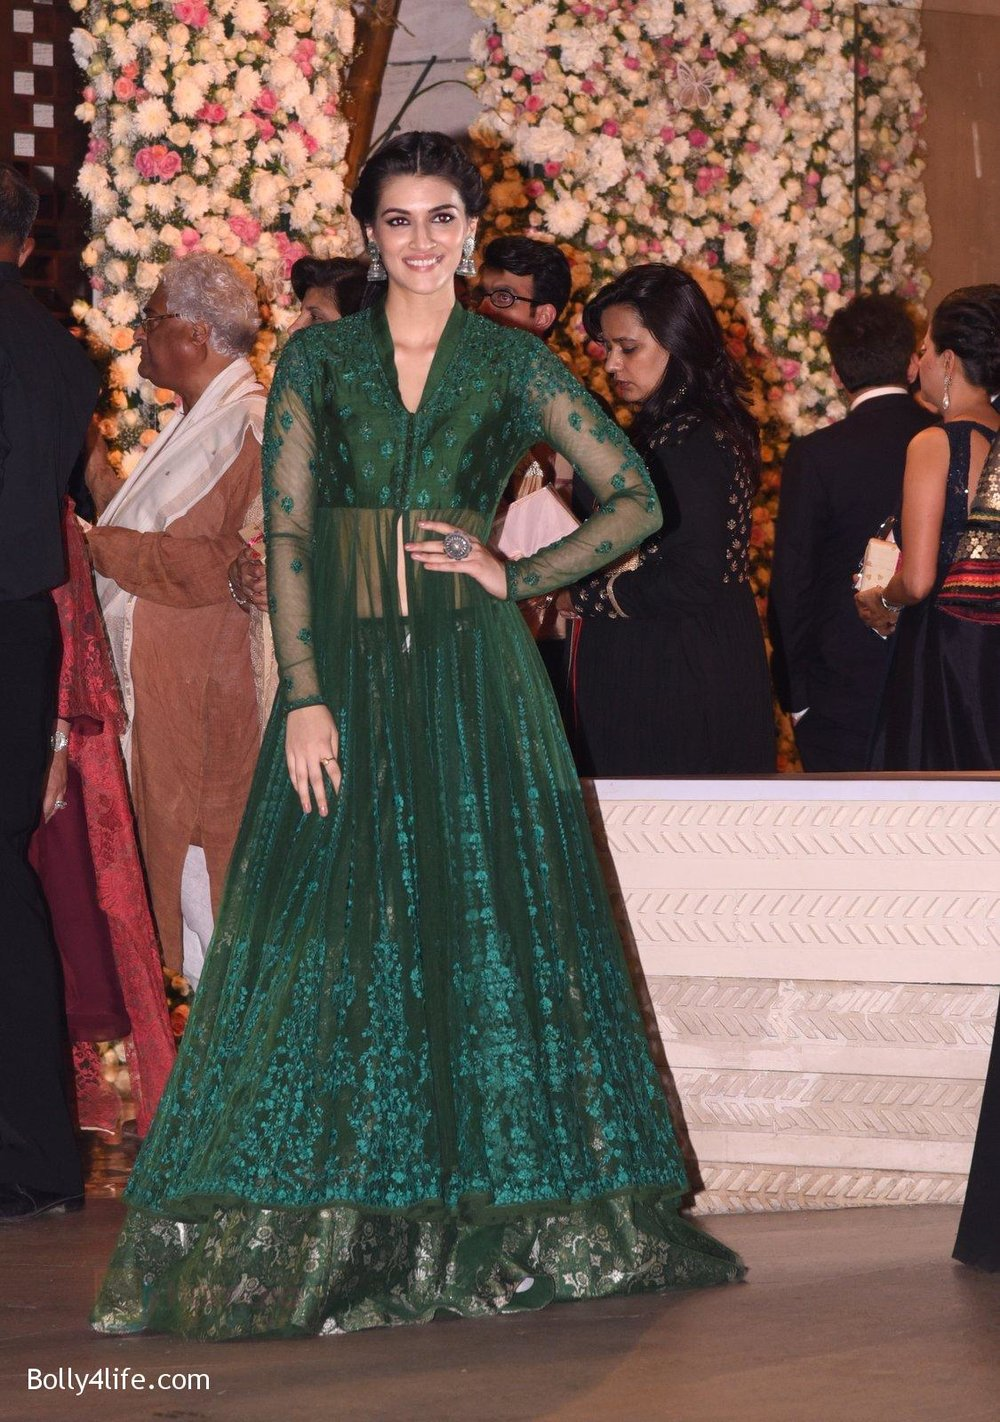 Kriti-Sanon-at-the-Ambanis-wedding-party-of-their-niece-Isheta-Salgaoncar-4.jpg